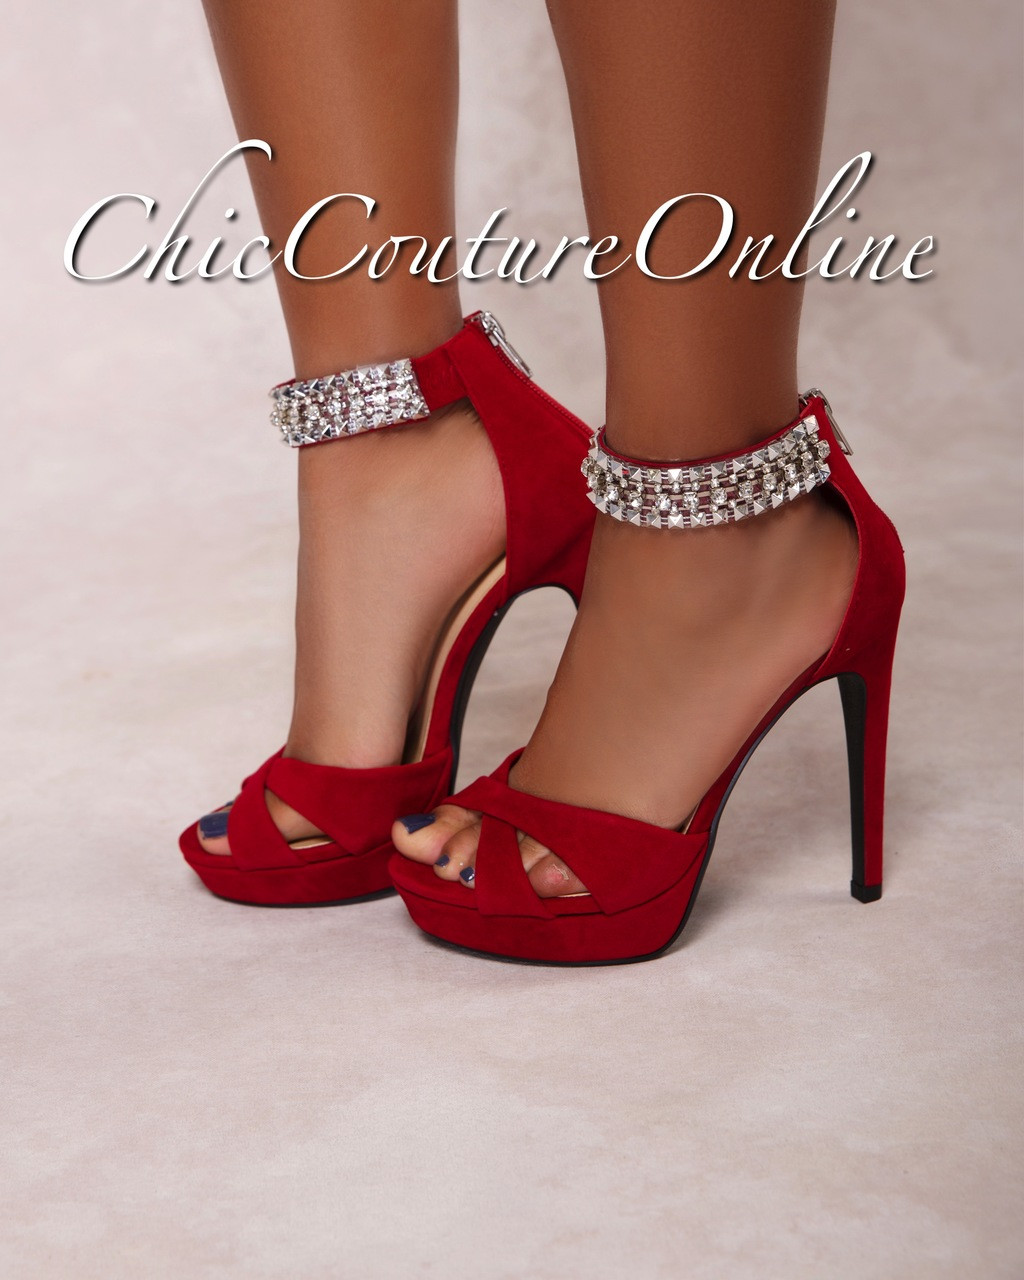 d1ec04cbaa4 Pico Deep Red Rhinestones Ankle High Heel Sandals